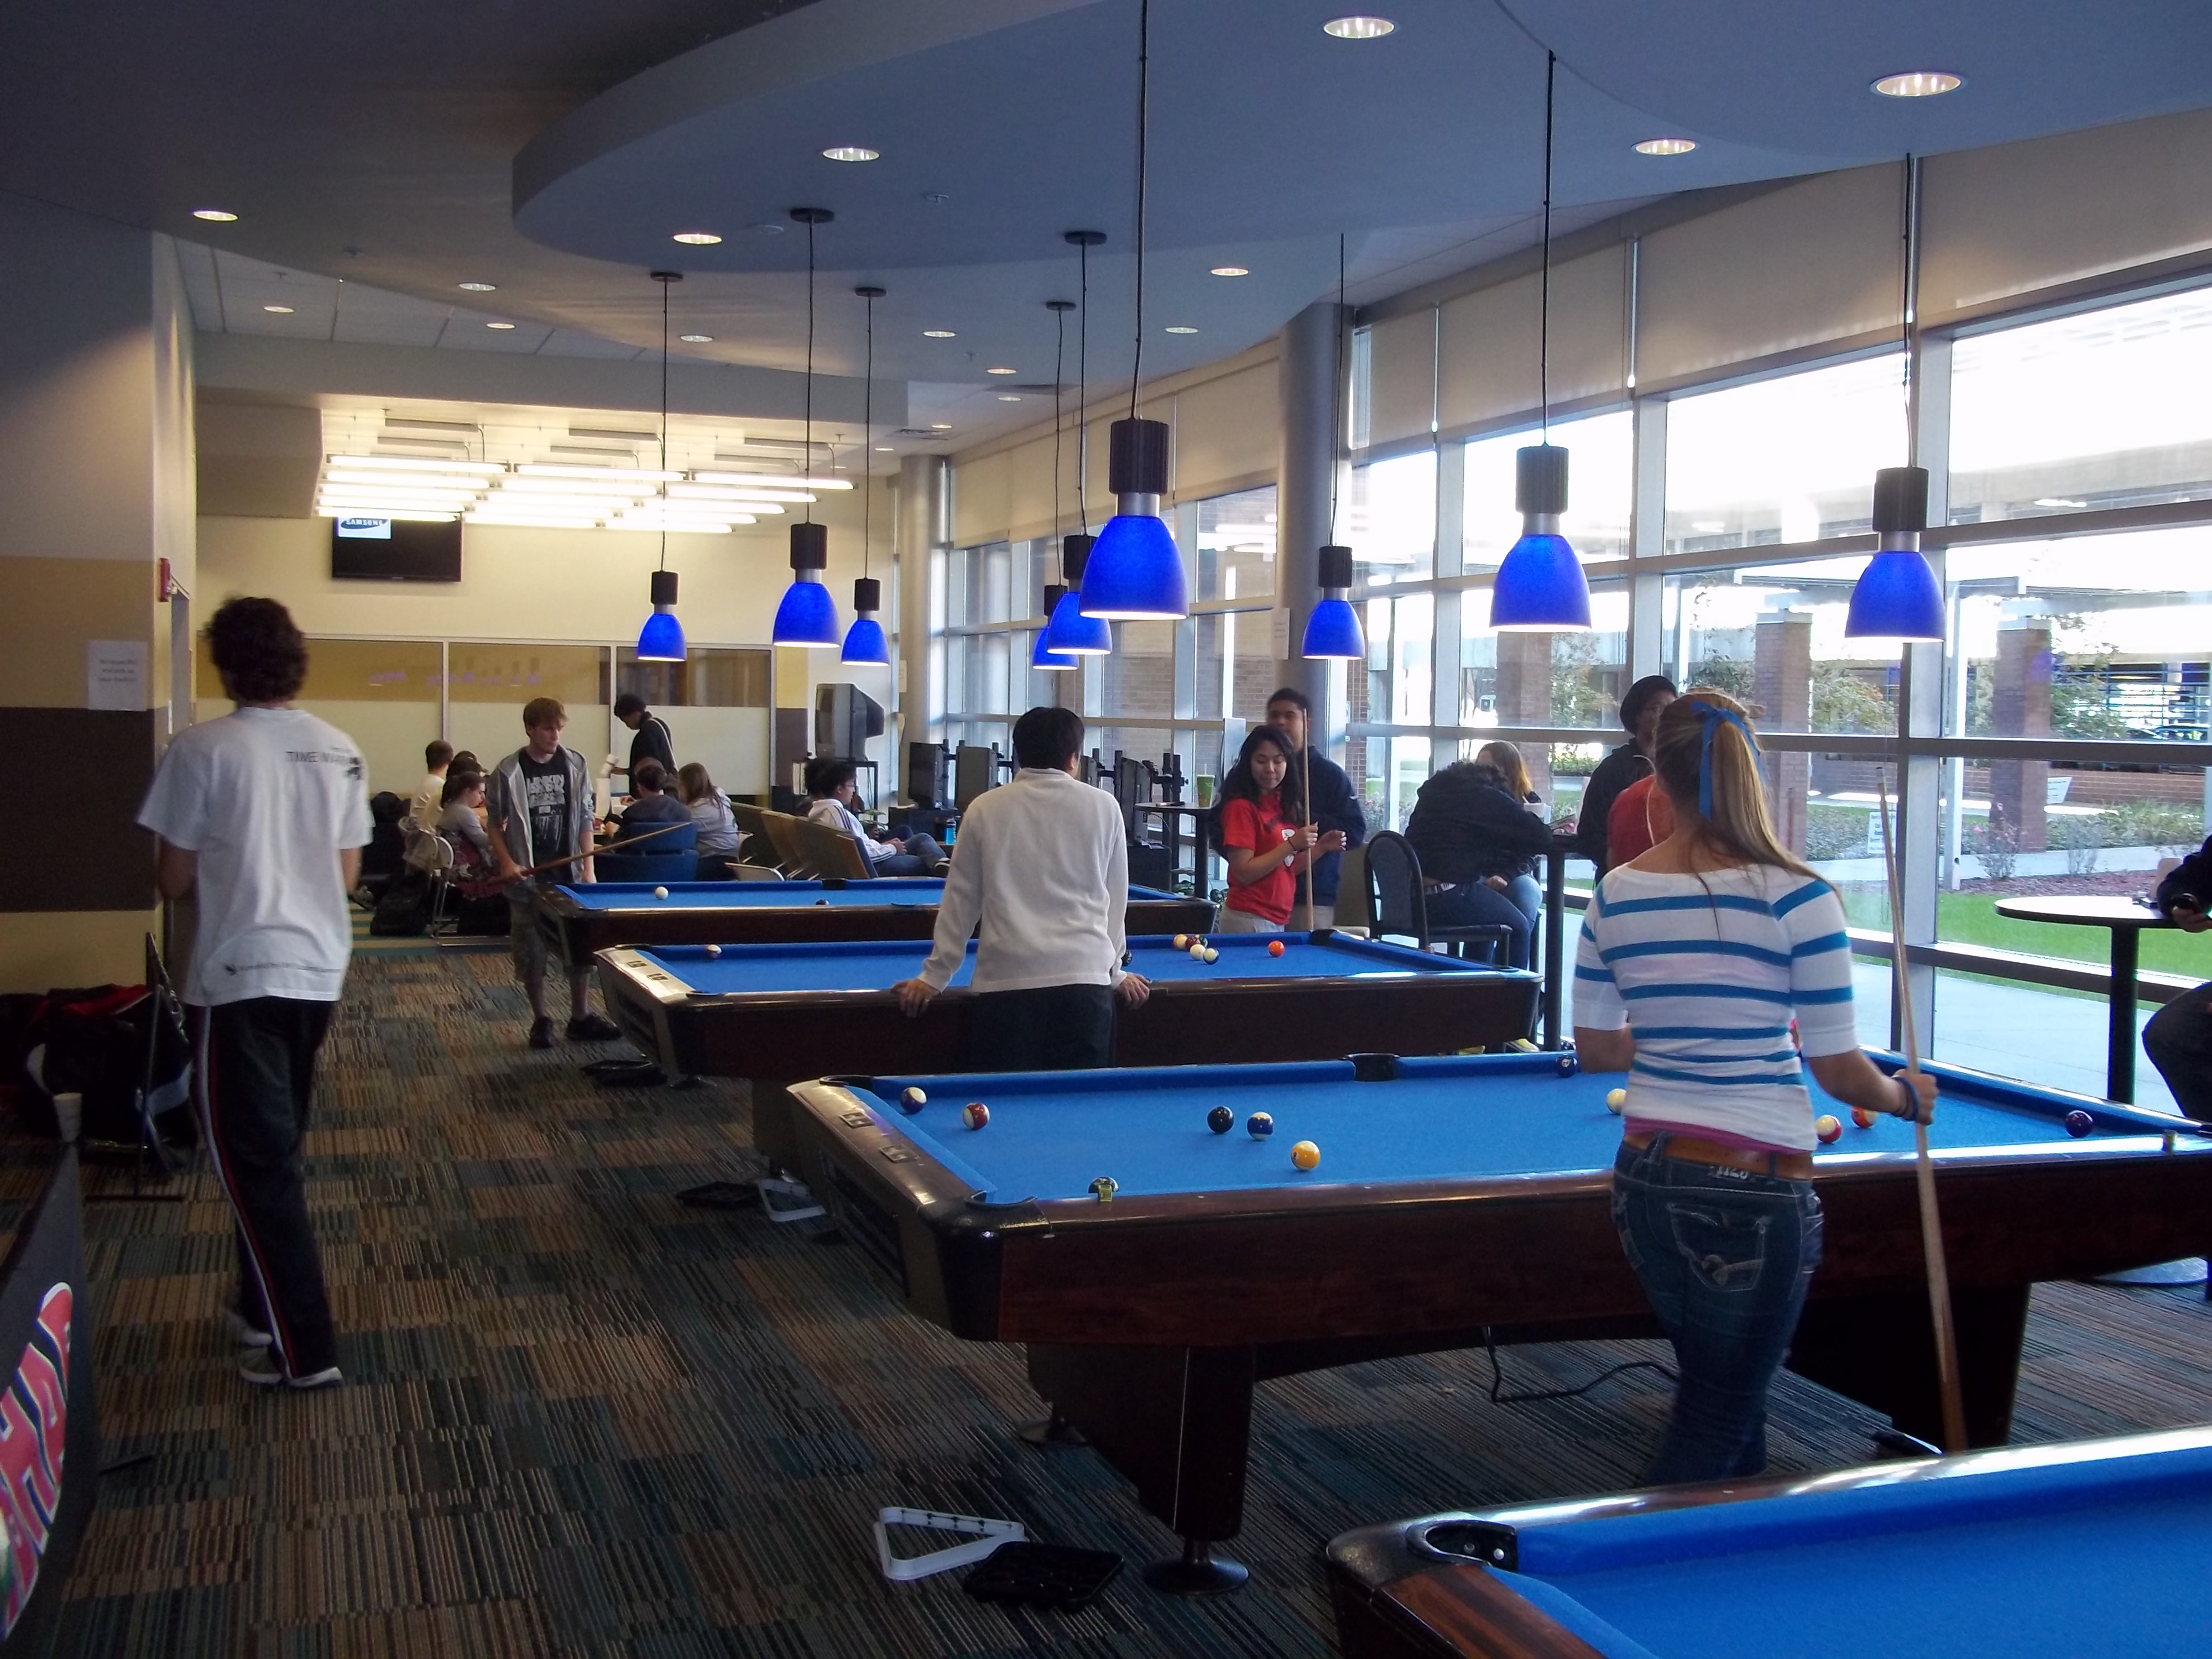 unf game room